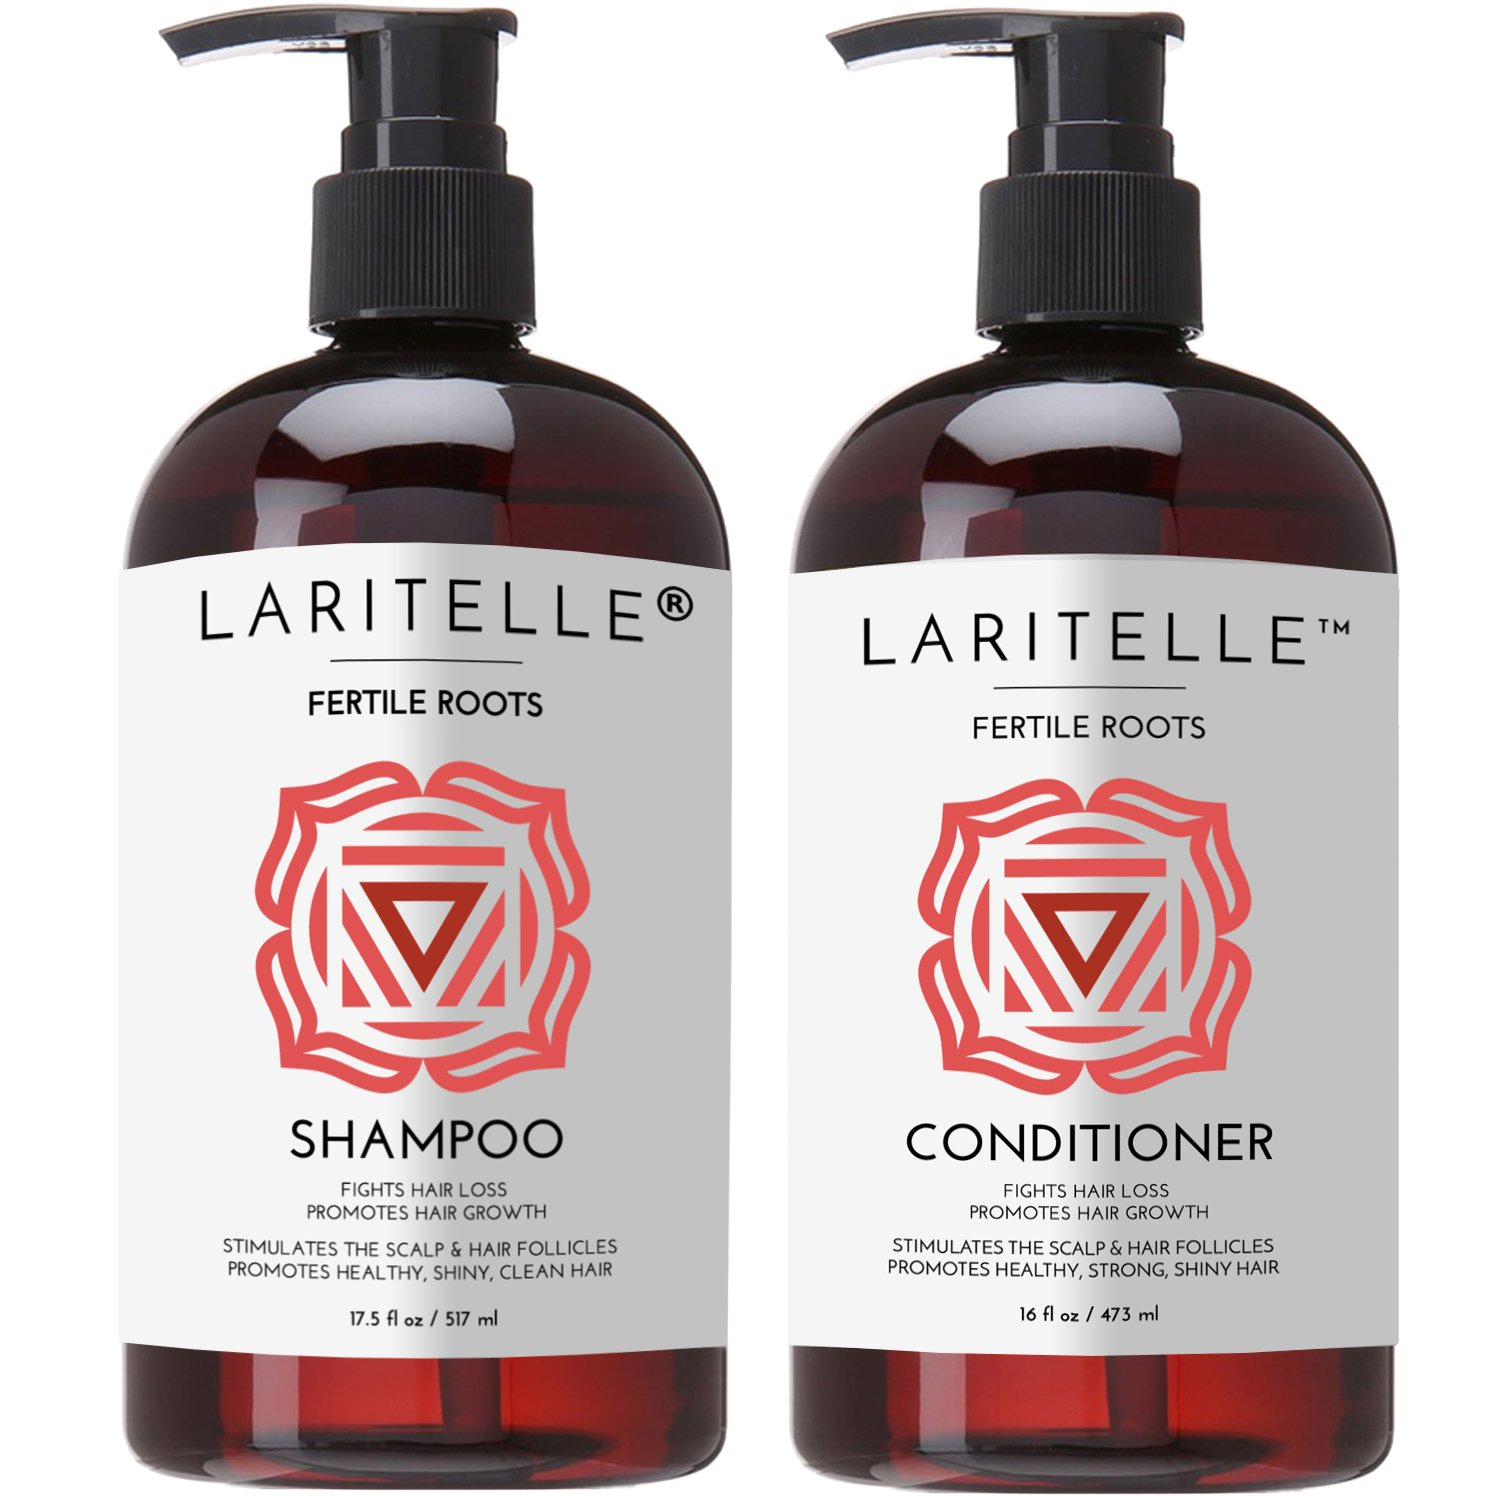 Laritelle Organic Shampoo 17 oz + Conditioner 16 oz | Prevents Hair Loss, Promotes Hair Growth | Ayurvedic Herbs, Lavender, Ginger & Rosemary | NO GMO, Sulfates, Gluten, Alcohol, Parabens, Phthalates